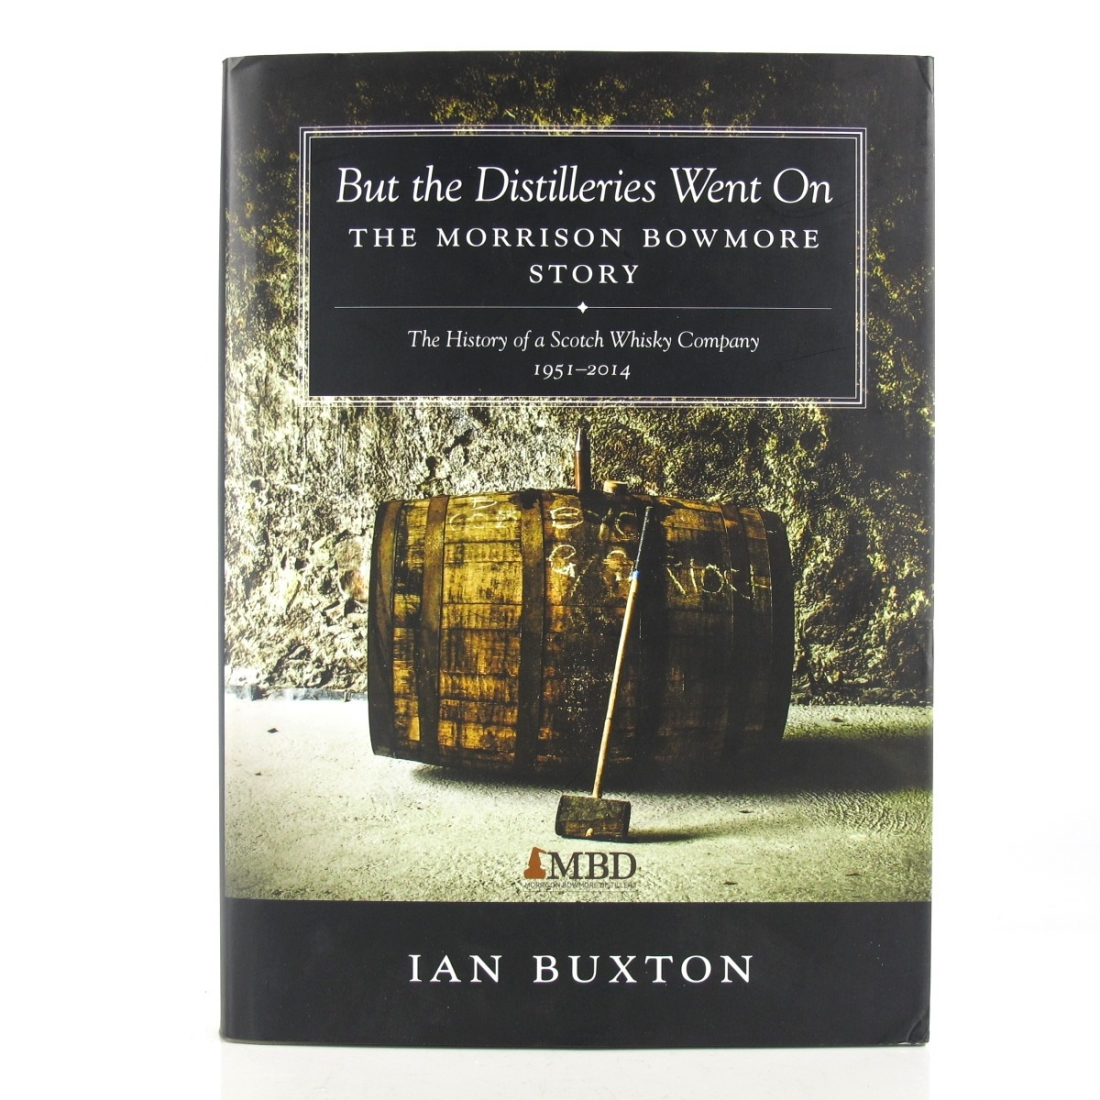 But the Distilleries Went On by Ian Buxton